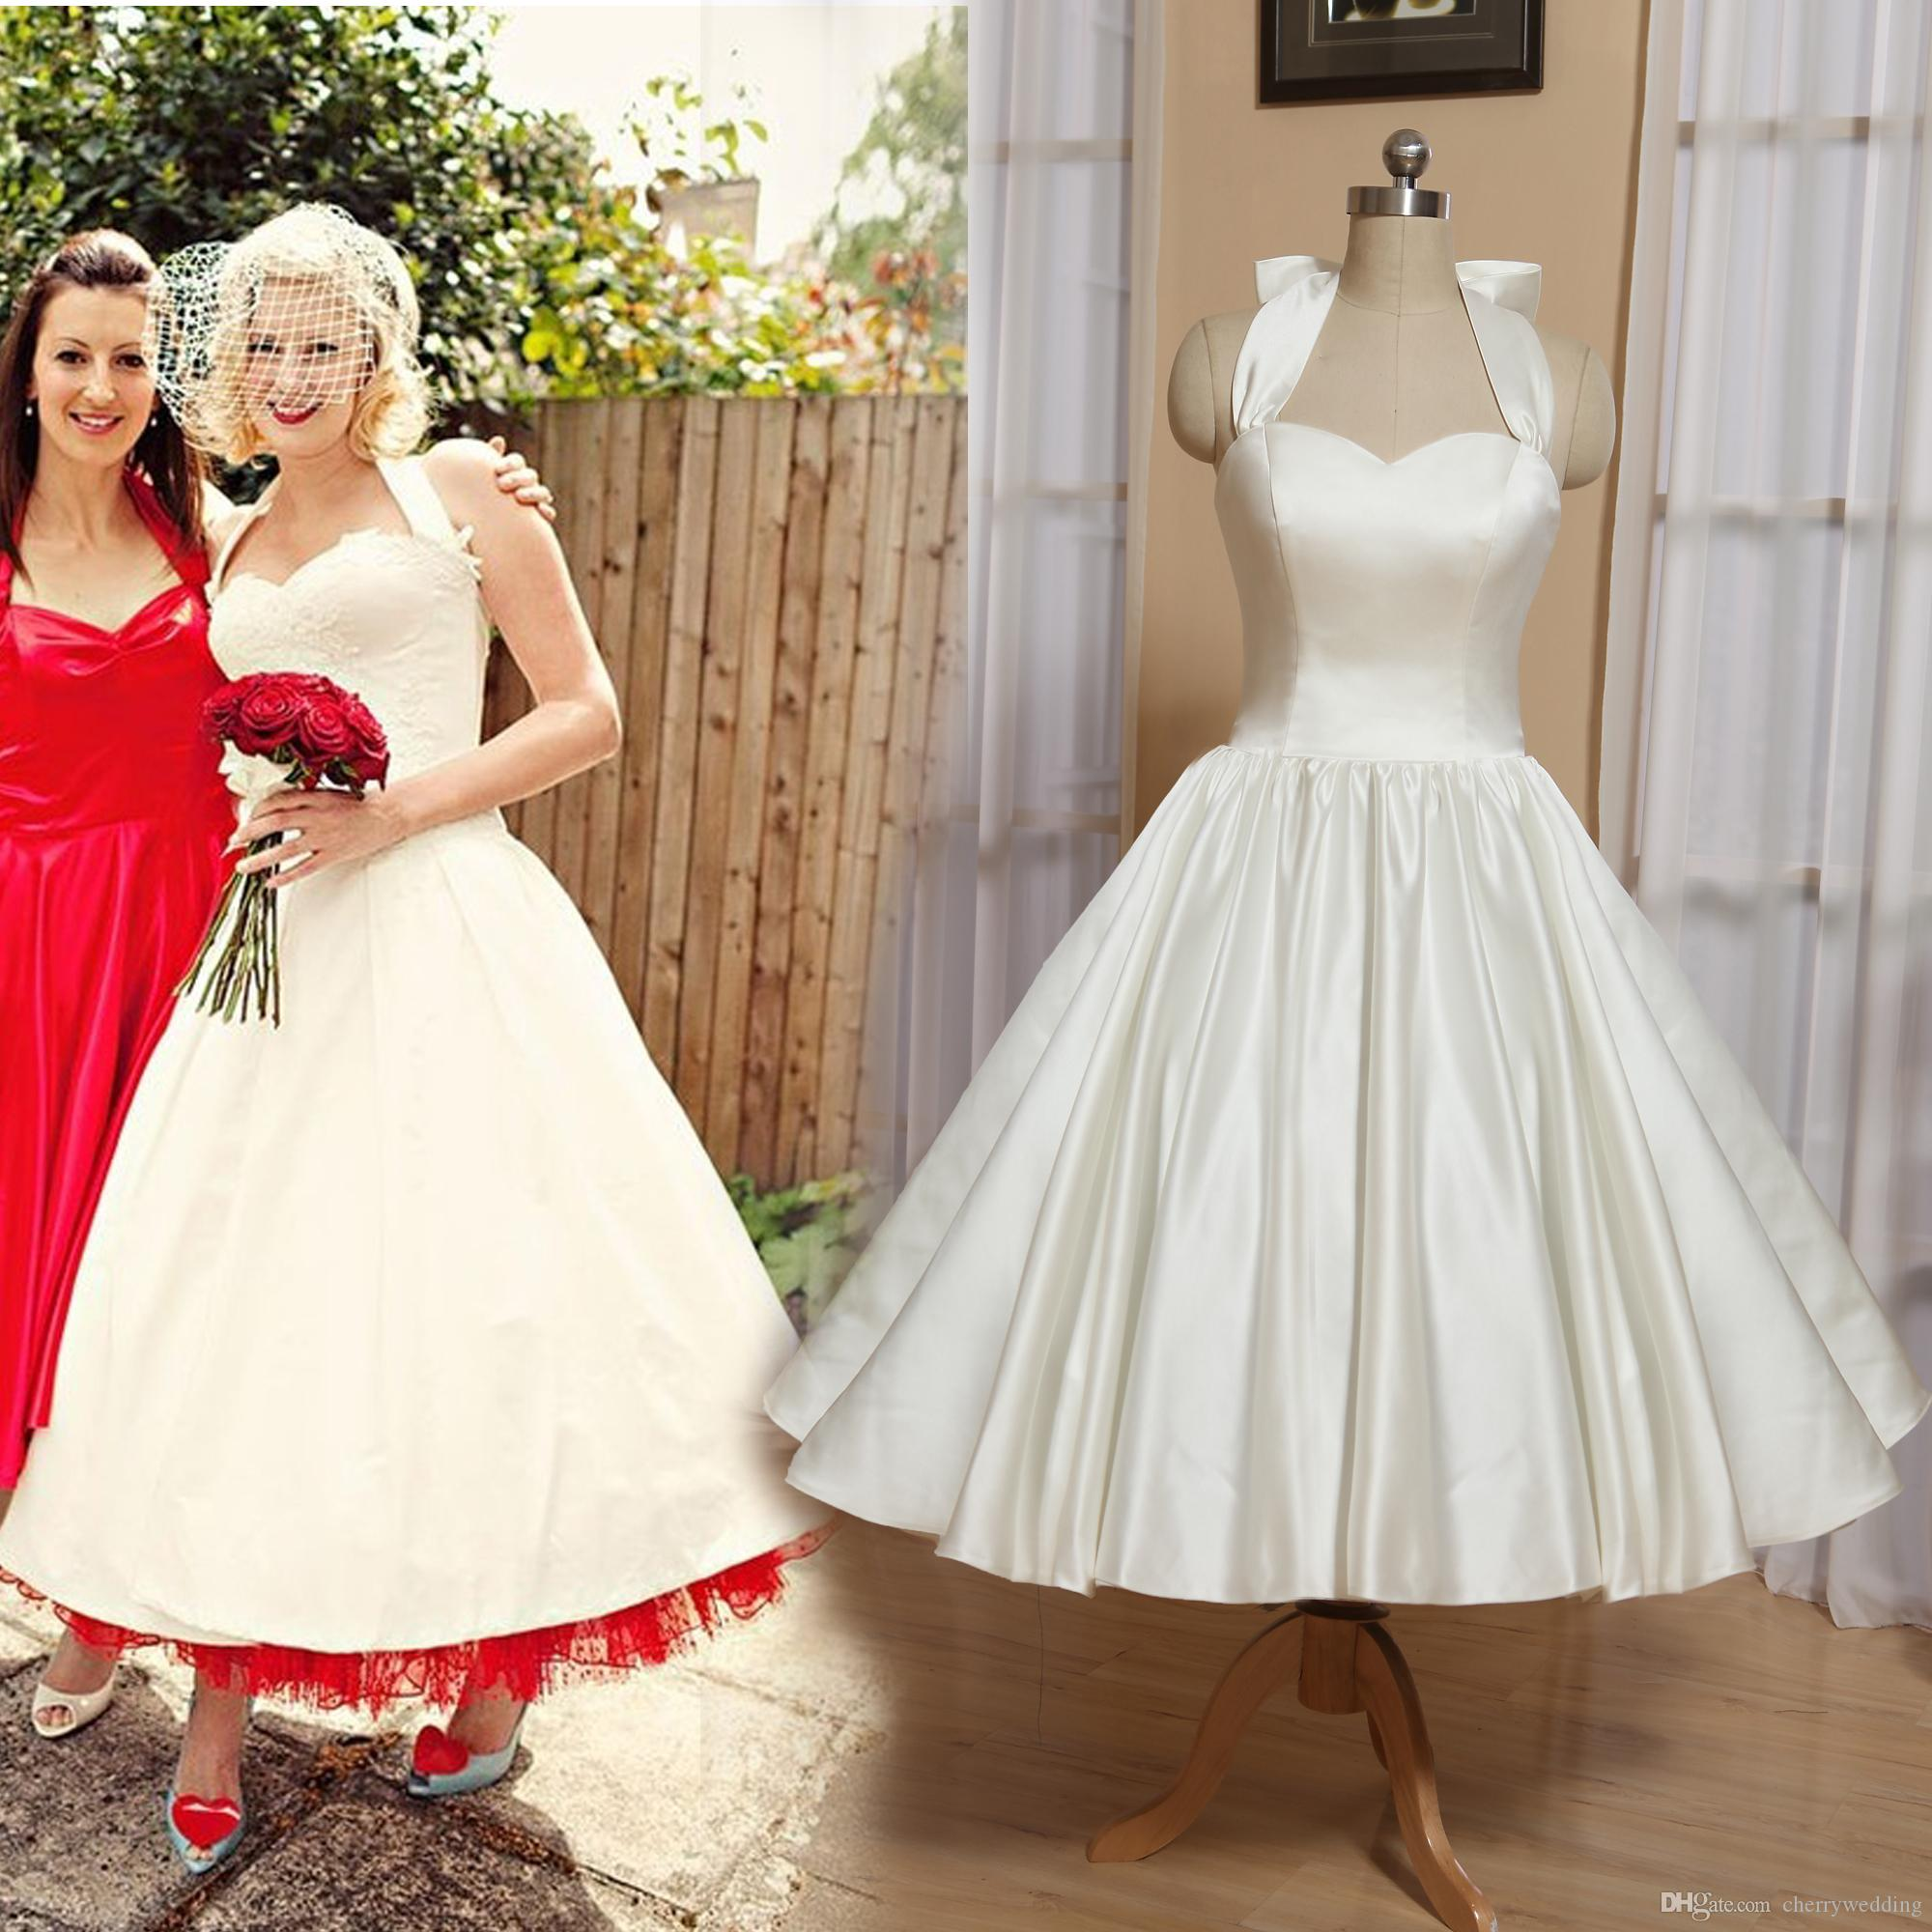 Pics Of Vintage Wedding Dresses: Discount Short Wedding Dresses 50s Wedding Dress Garden